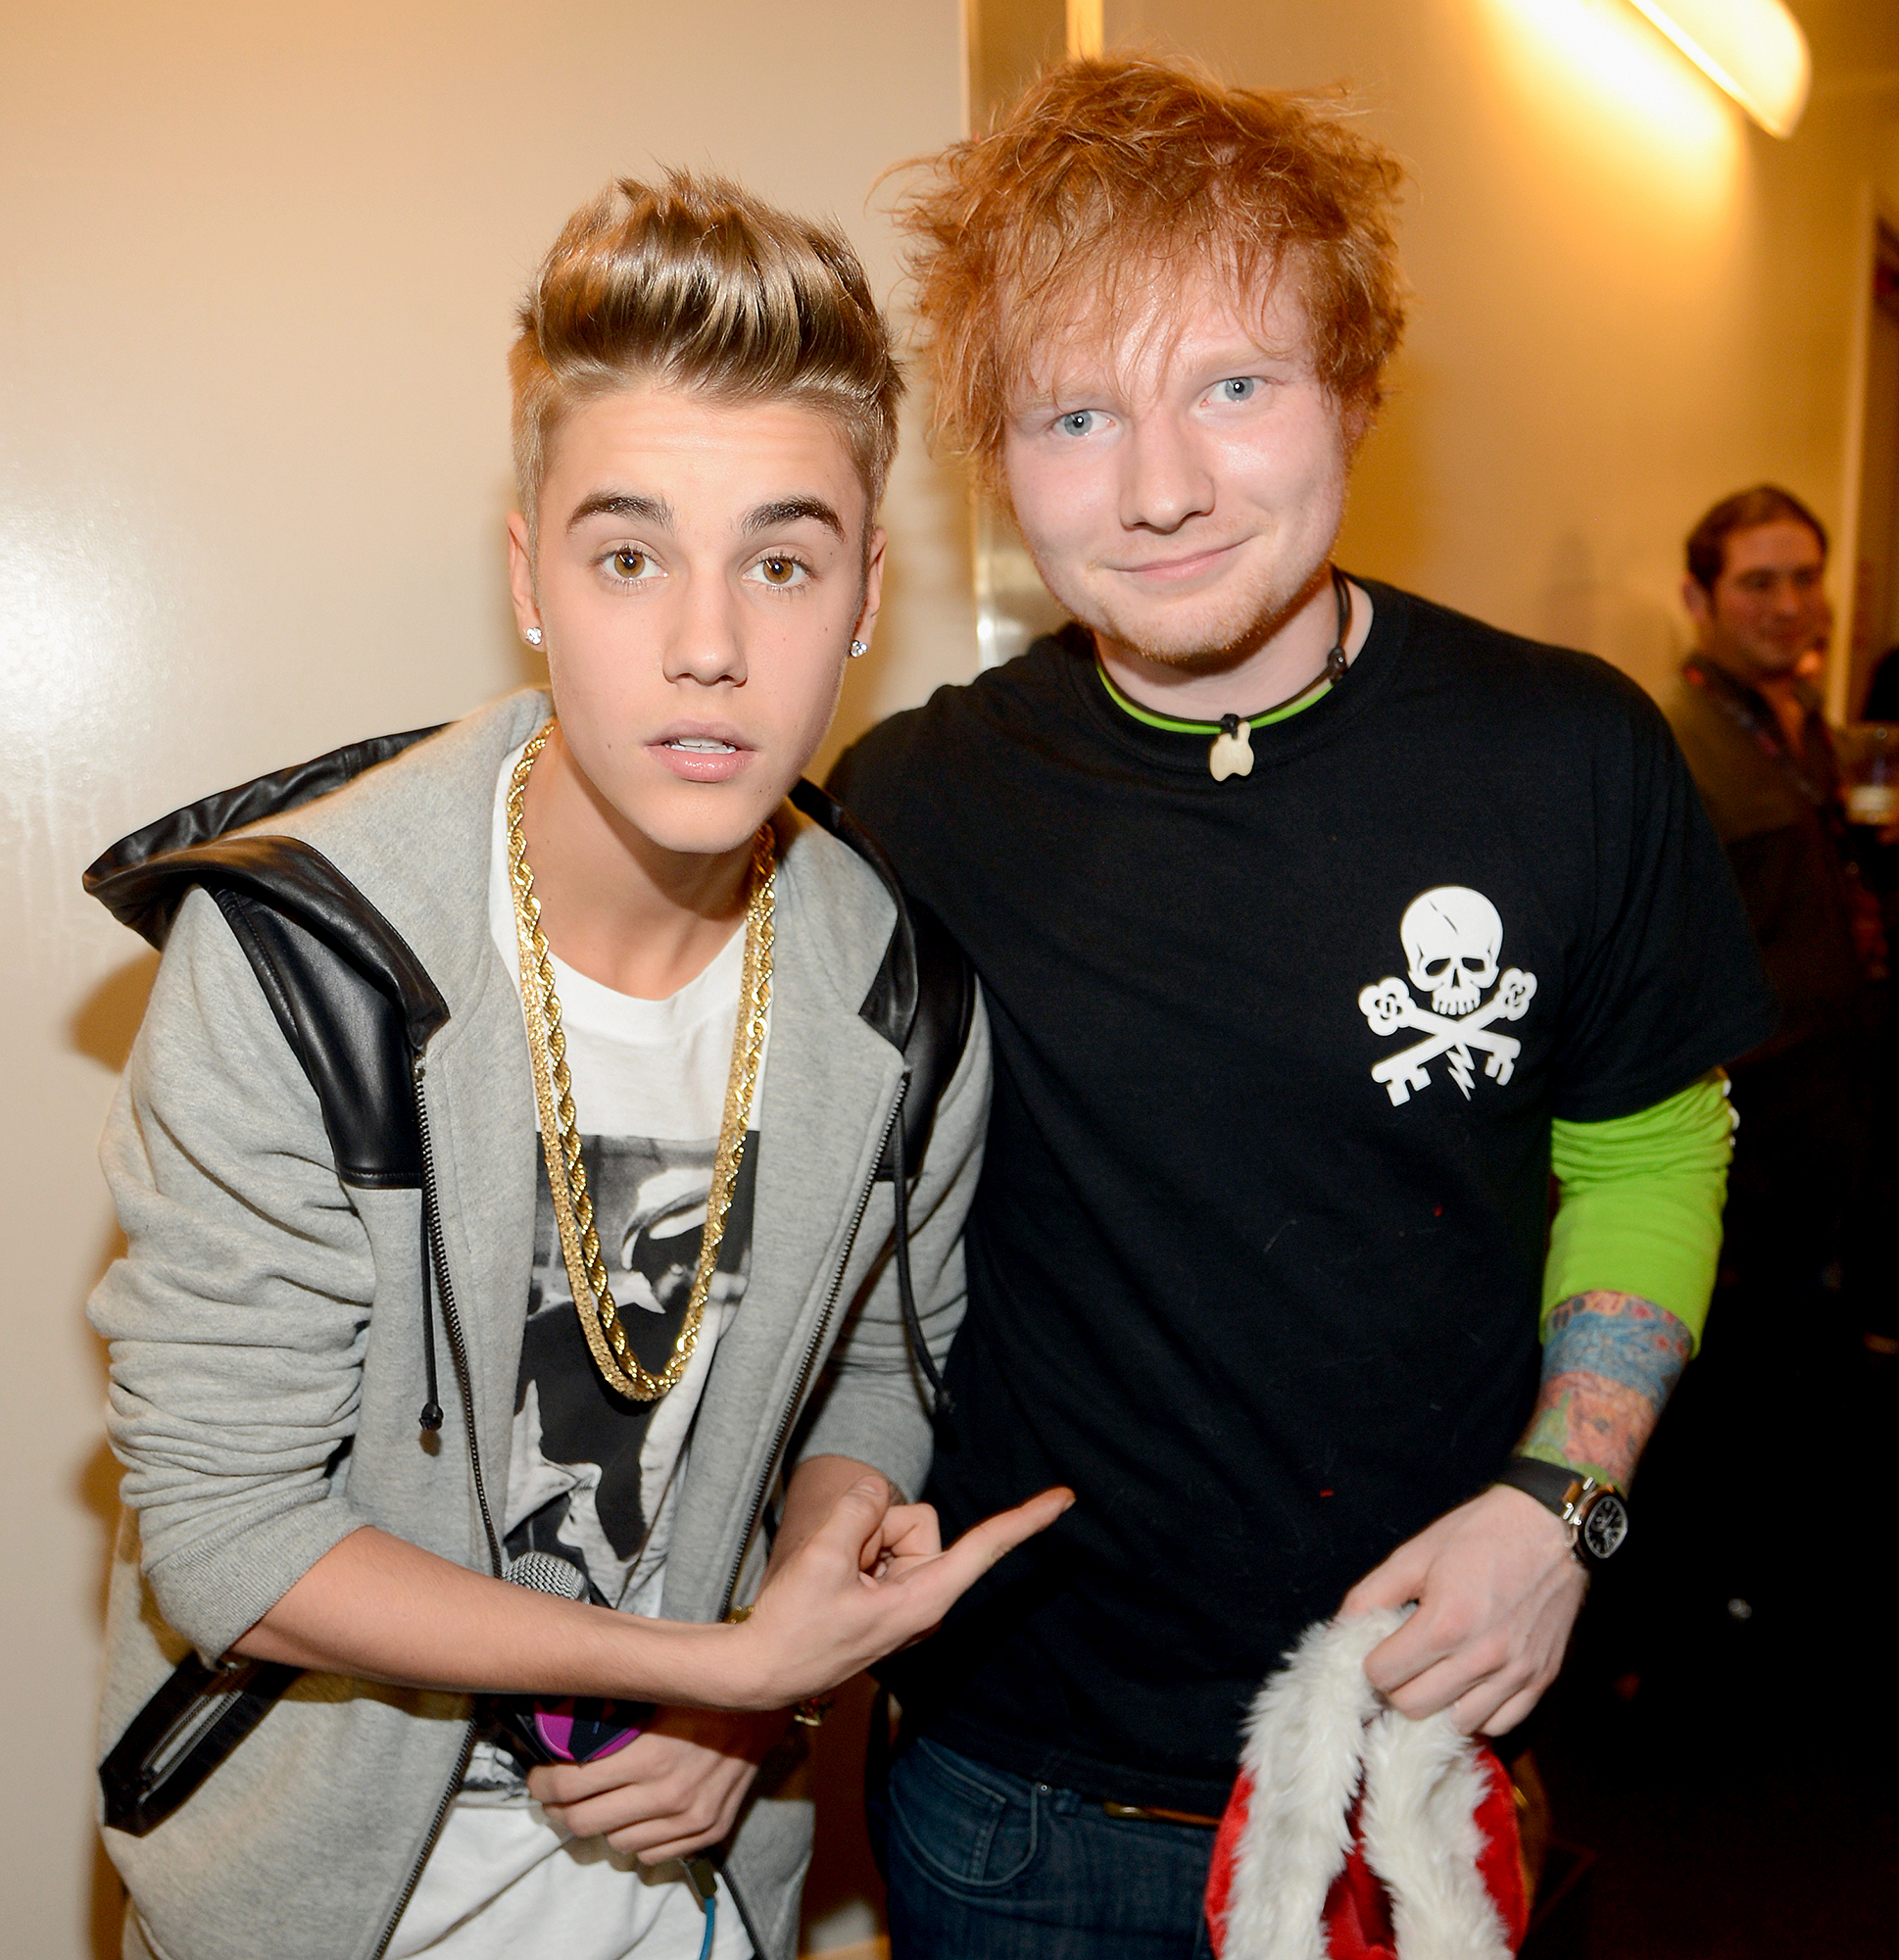 Justin-Bieber-and-Ed-Sheeran-new-song